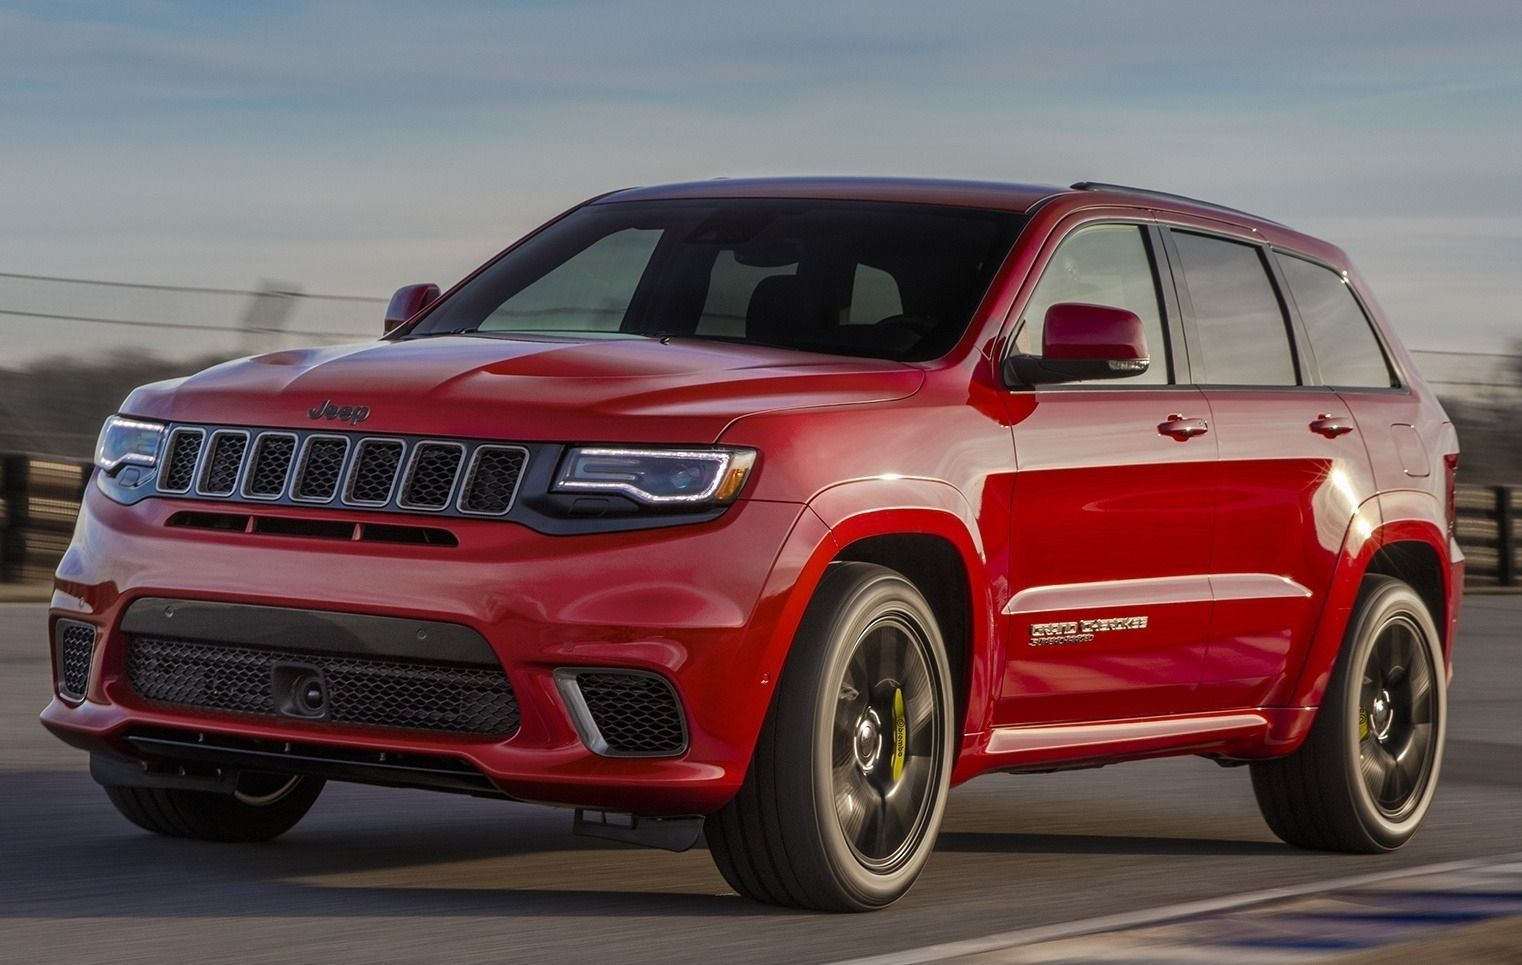 The 2018 Jeep Grand Cherokee Diesel Engine Cars Review 2019